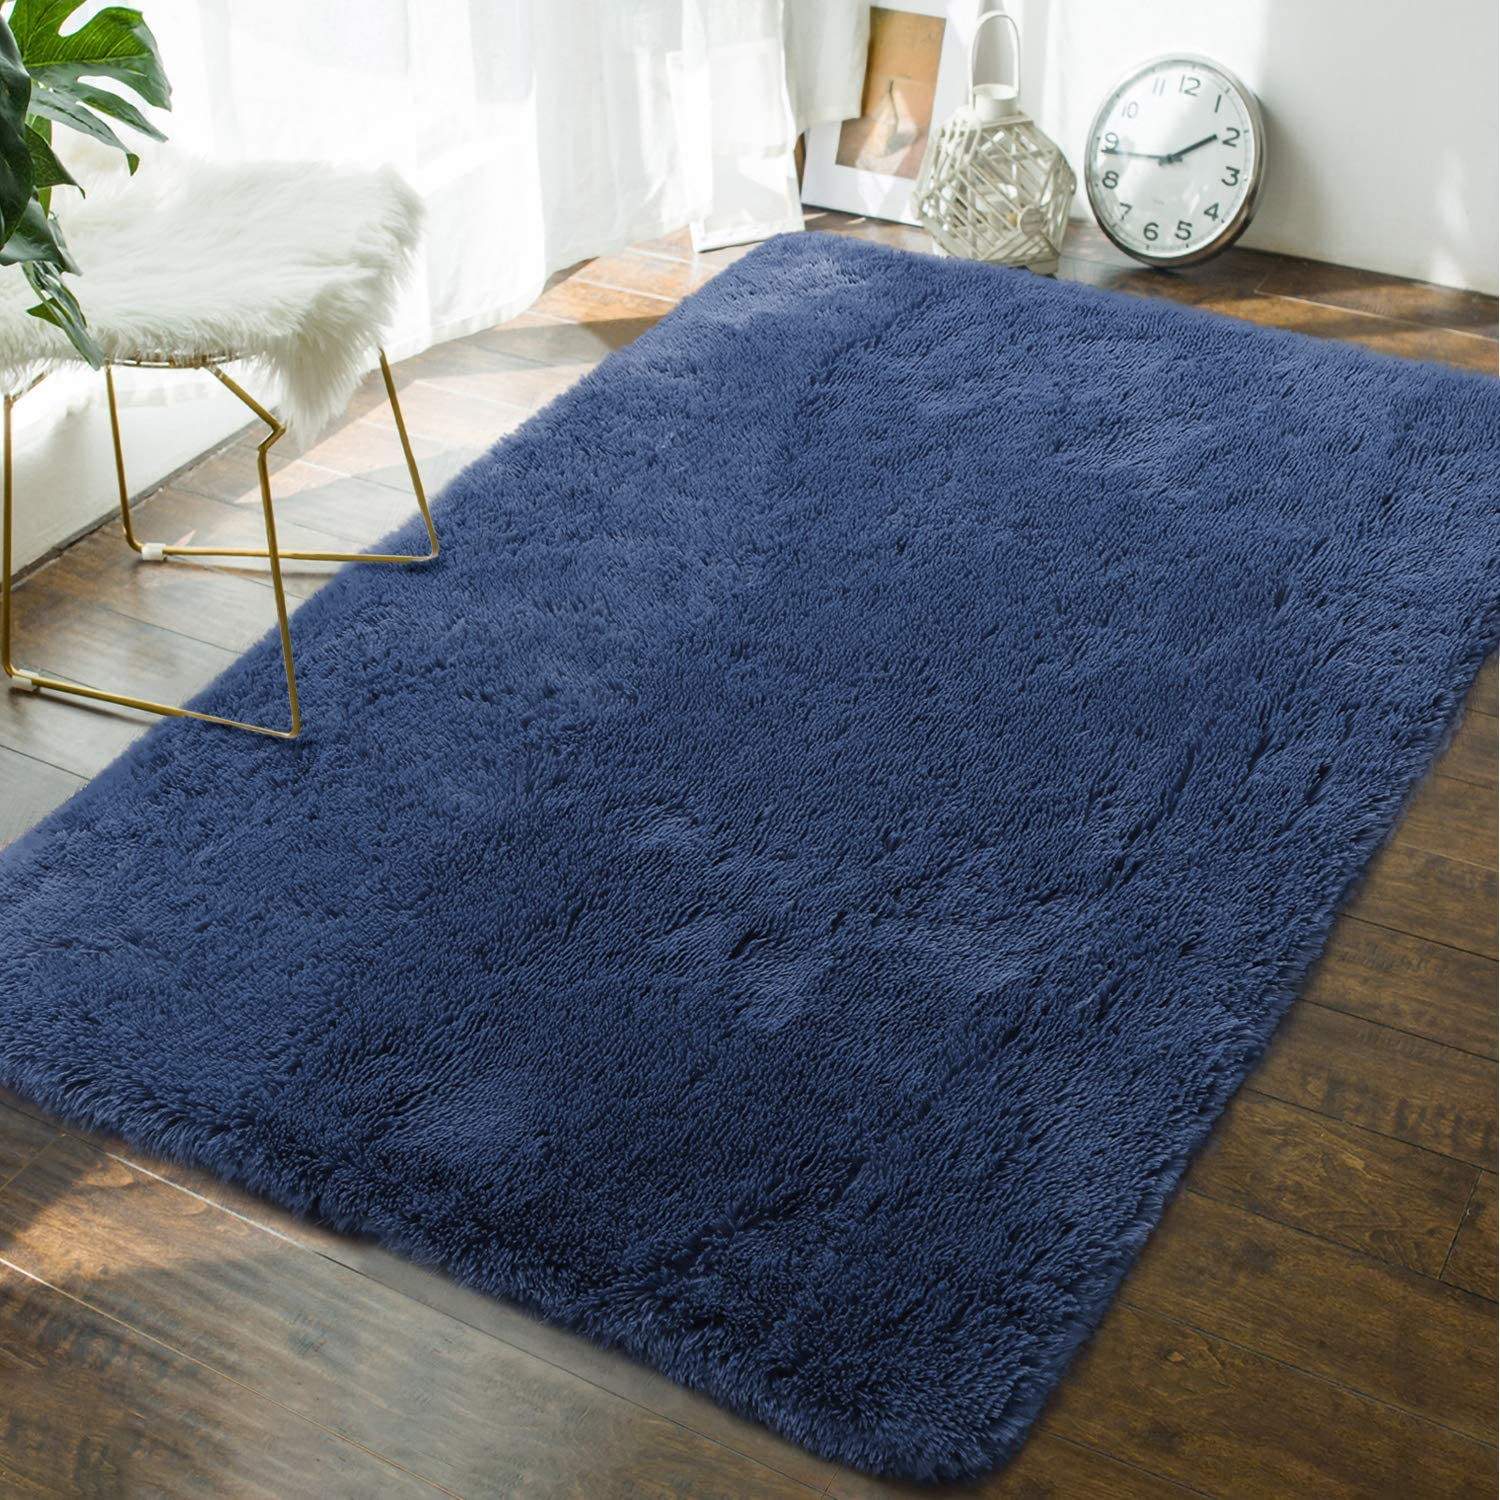 Andecor Soft Fluffy Bedroom Rugs - 4 x 6 Feet Indoor Shaggy Plush Area Rug for Boys Girls Kids Baby College Dorm Living Room Home Decor Floor Carpet, Light Navy